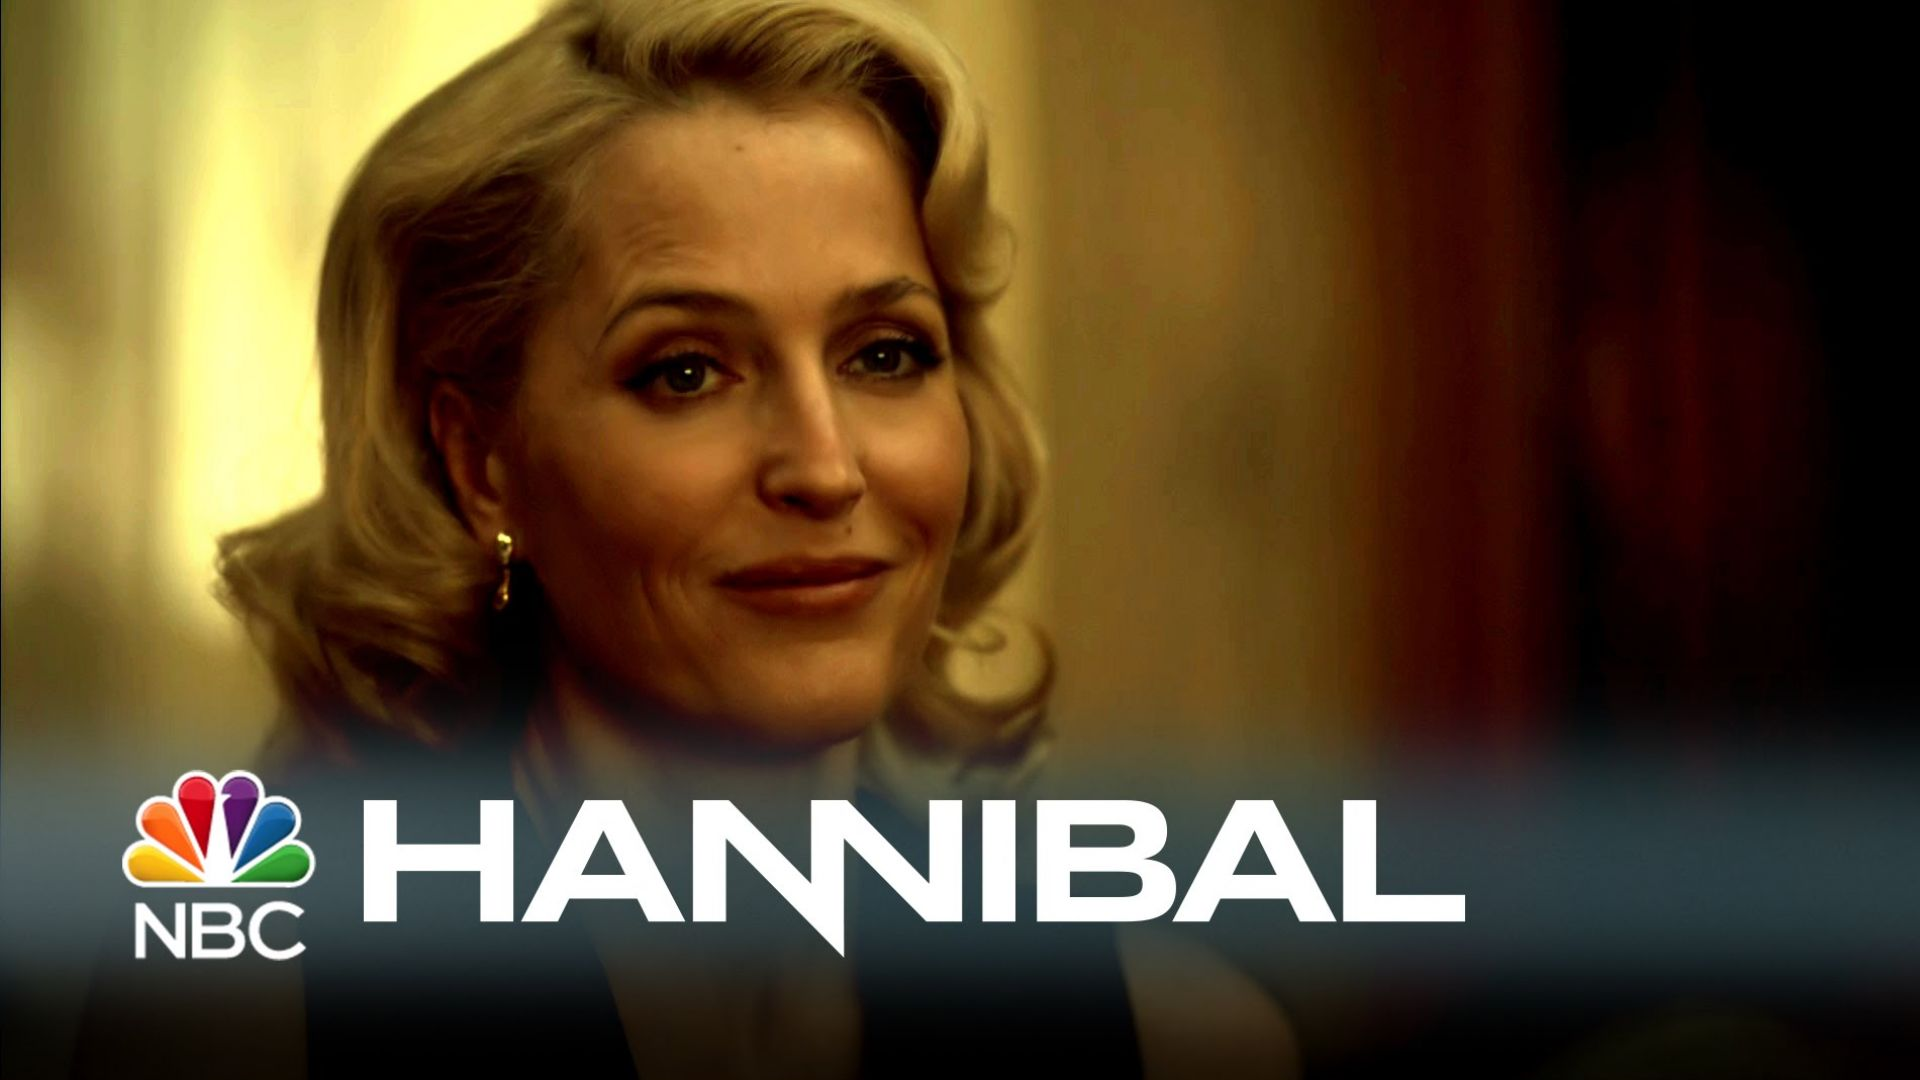 Hannibal is Happy Together in first Season 3 preview - premi